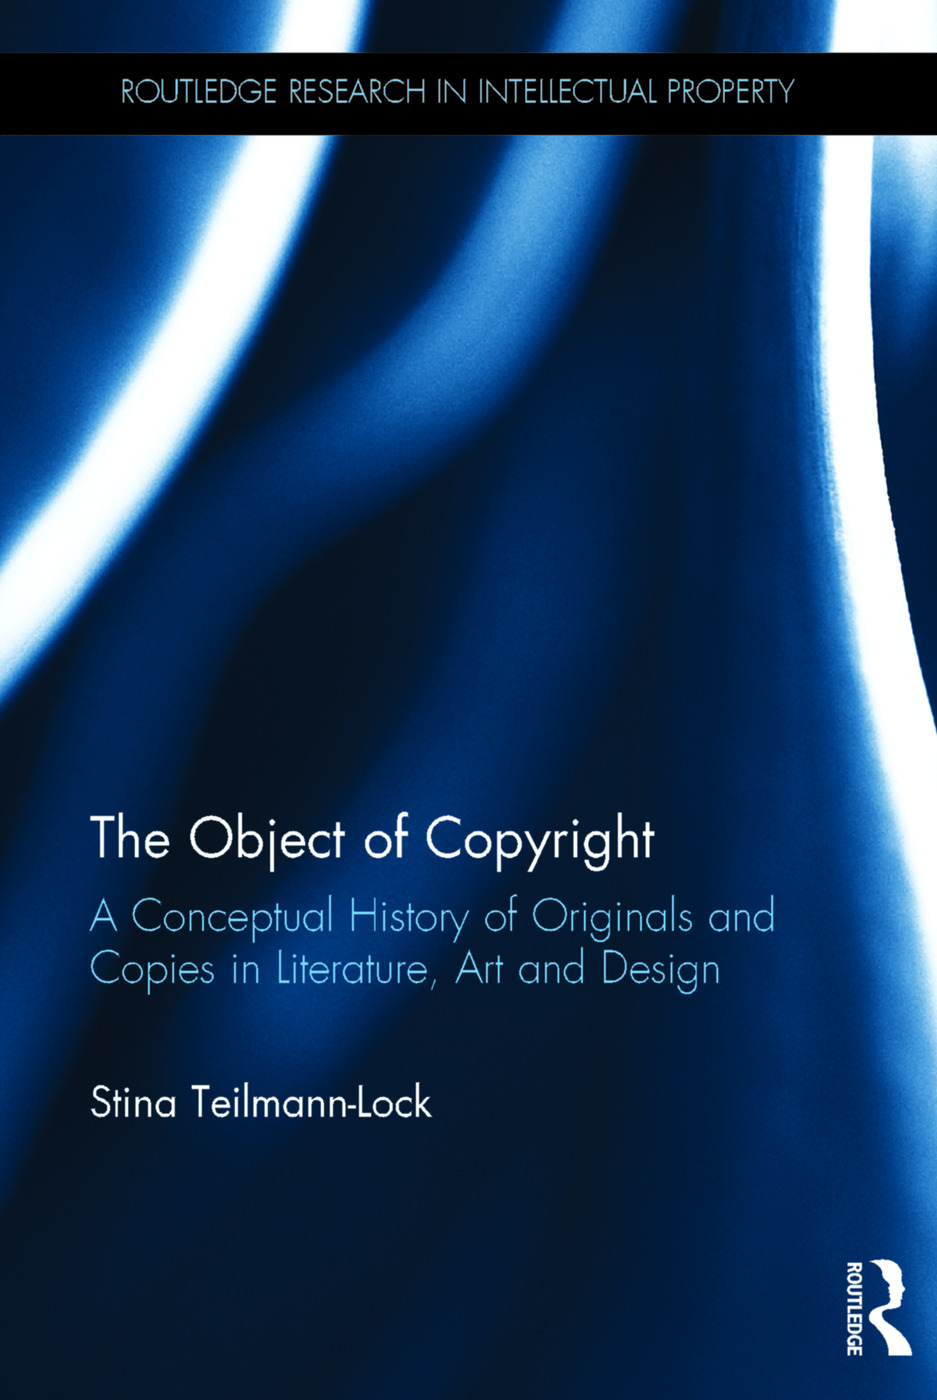 The Object of Copyright: A Conceptual History of Originals and Copies in Literature, Art and Design book cover